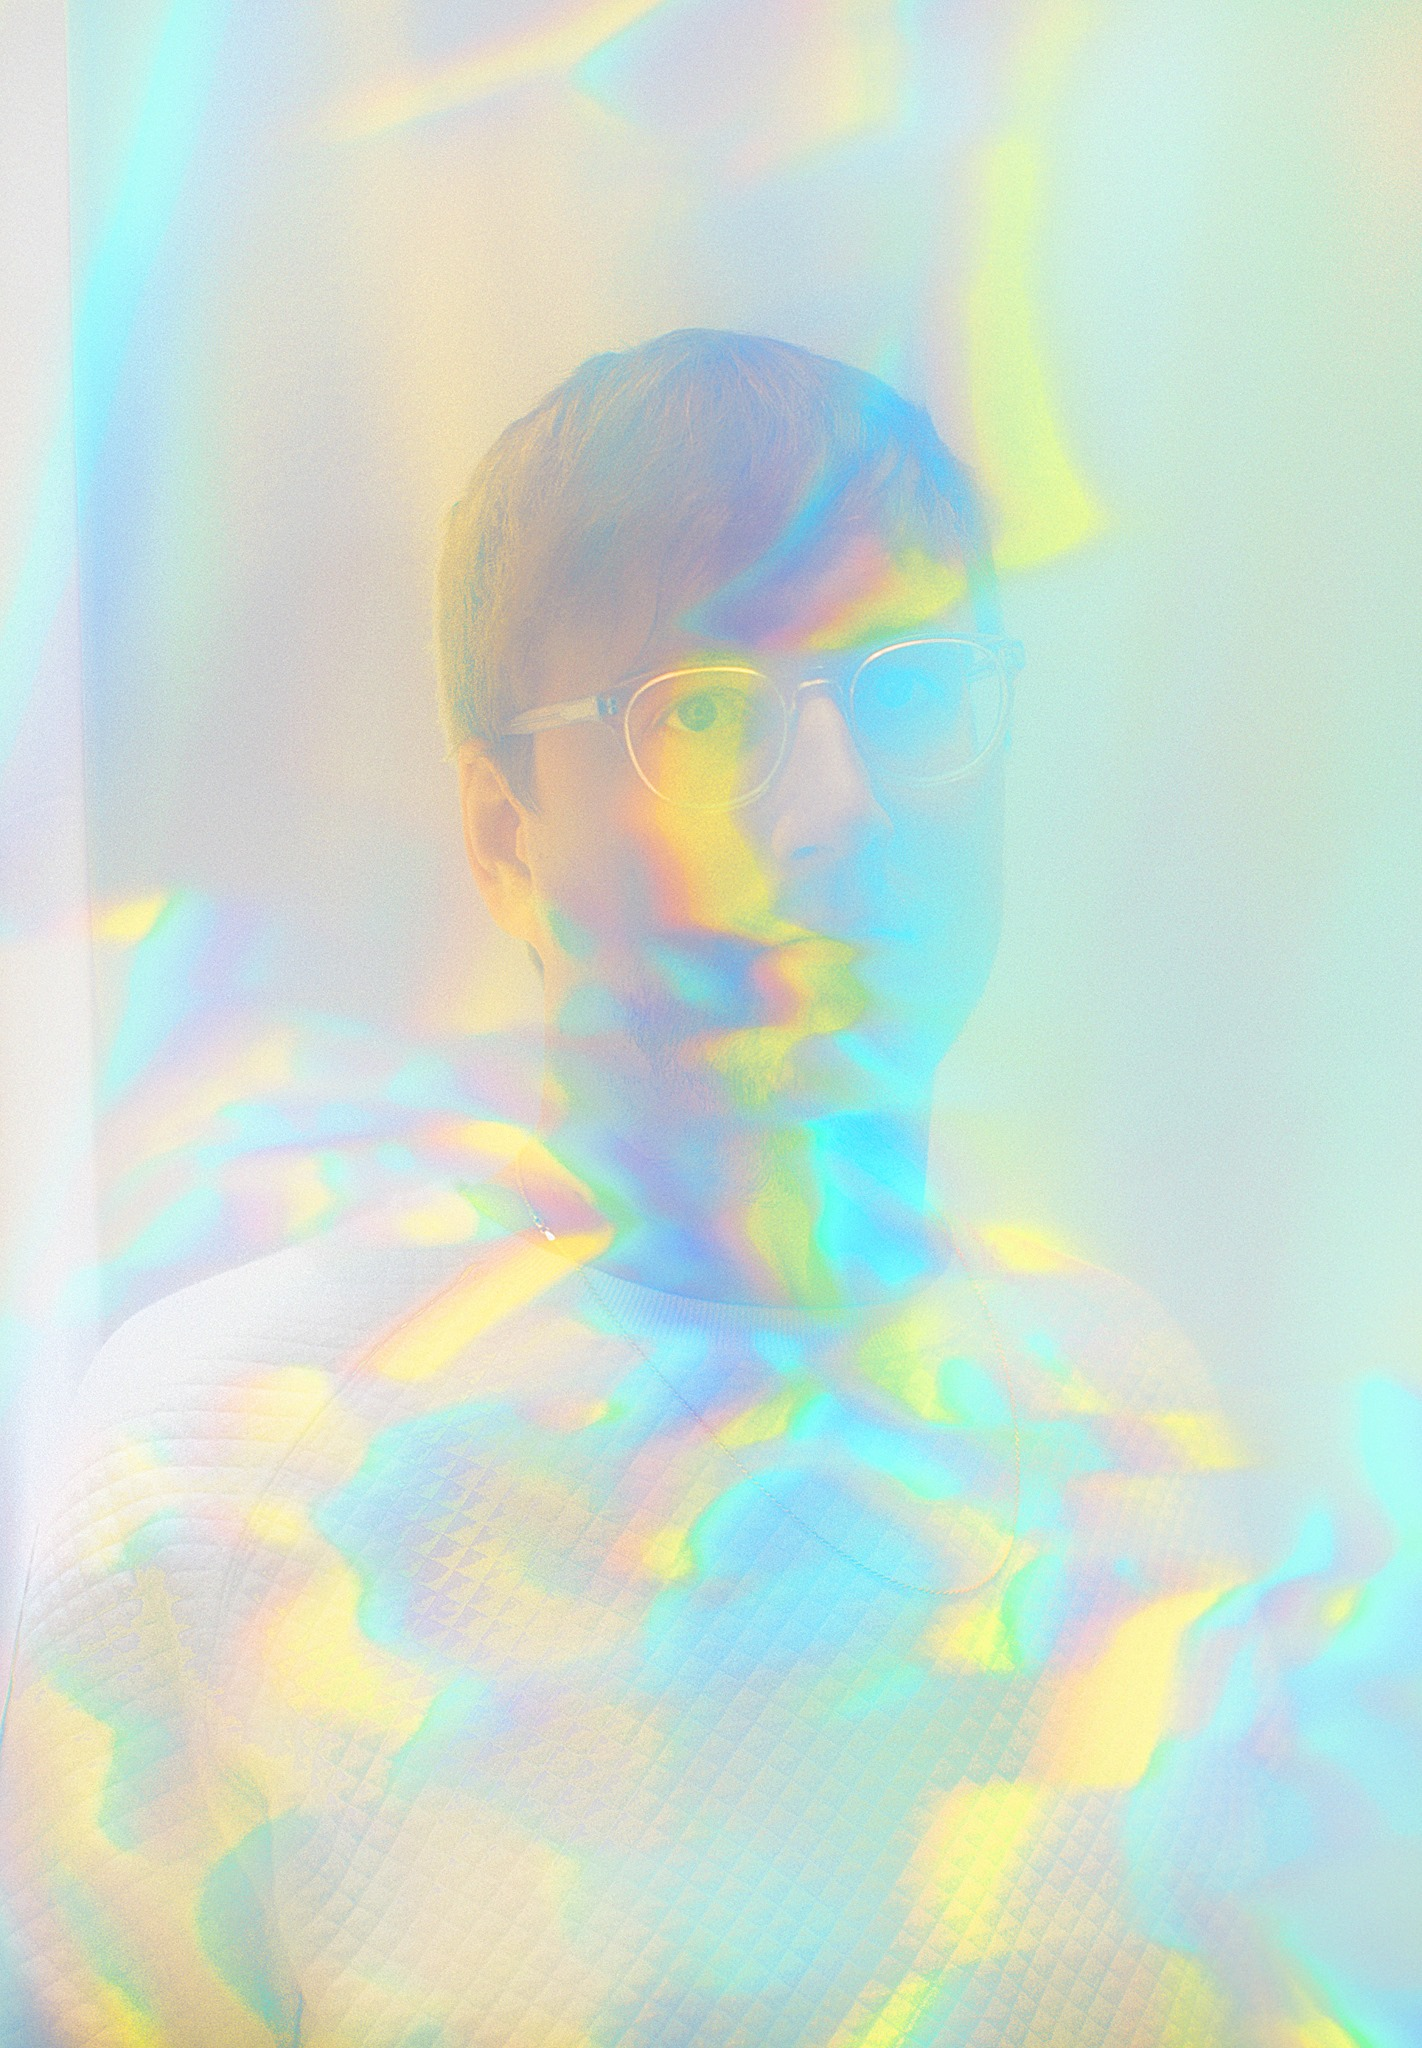 Machinedrum artist image